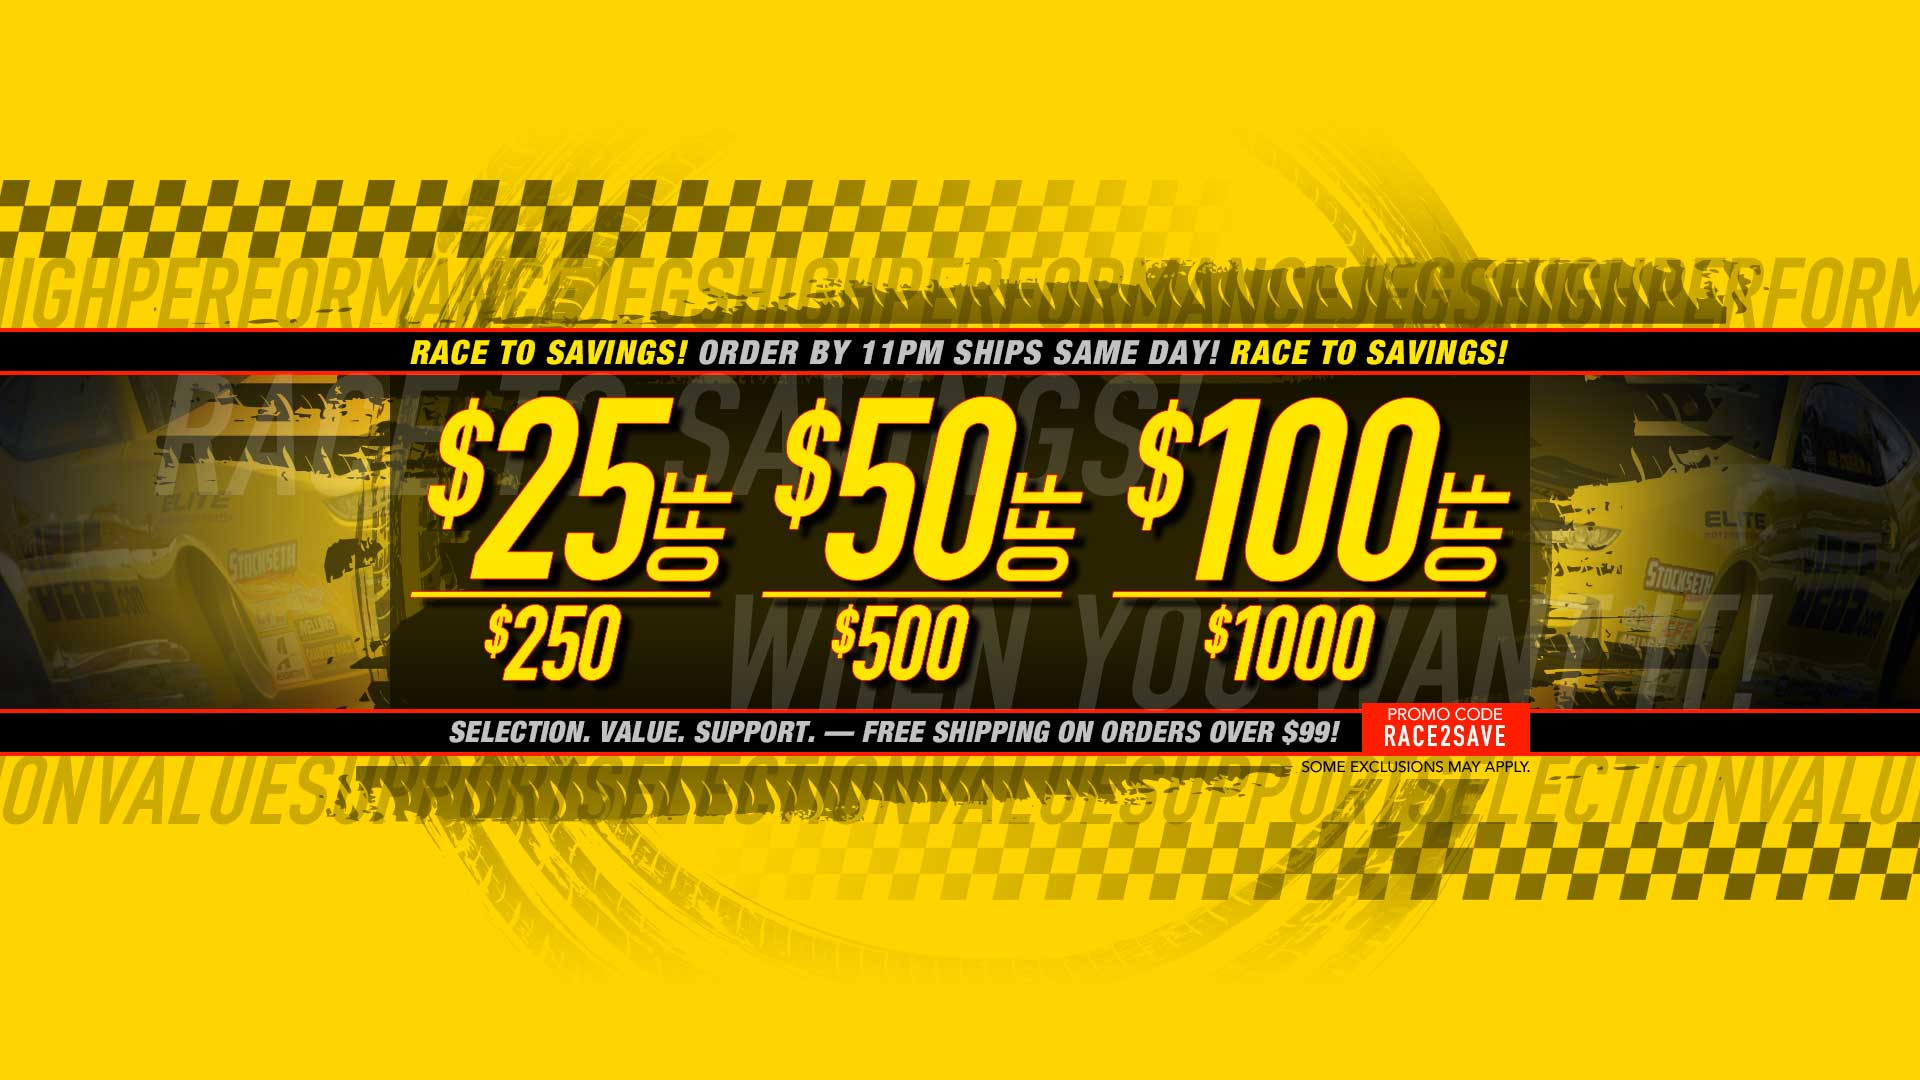 Save $20 off $250, $40 off $500, $100 off $1,000 - Use Promo Code: RACE2SAVE